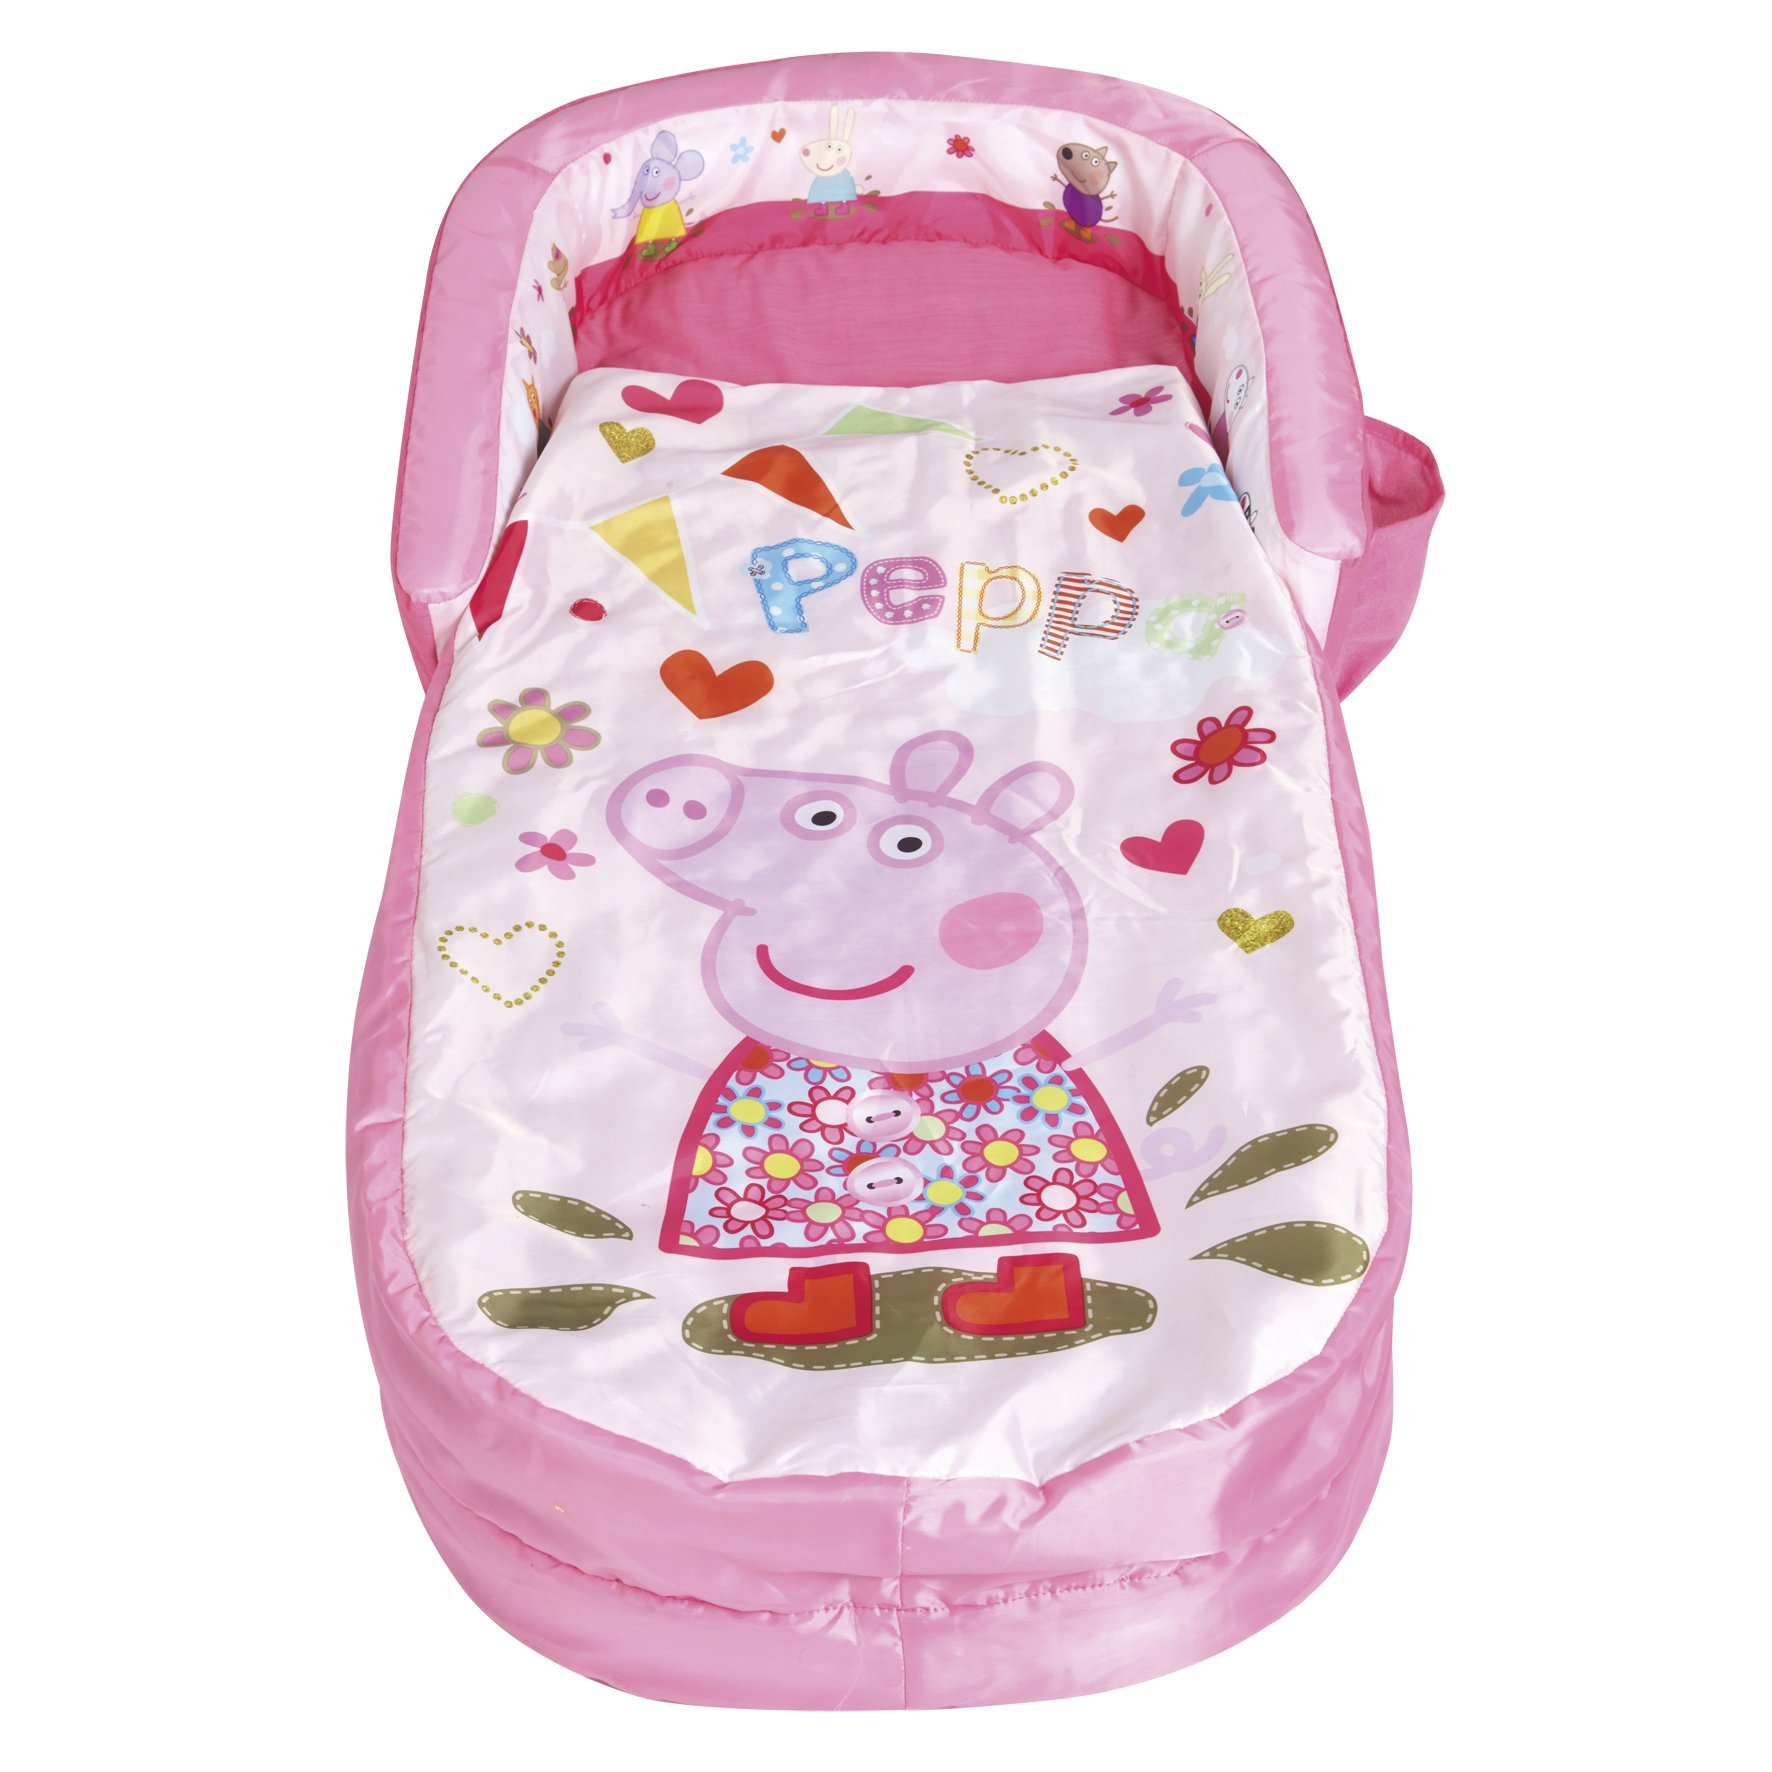 ReadyBed Peppa Pig Airbed and Sleeping Bag In One | eBay